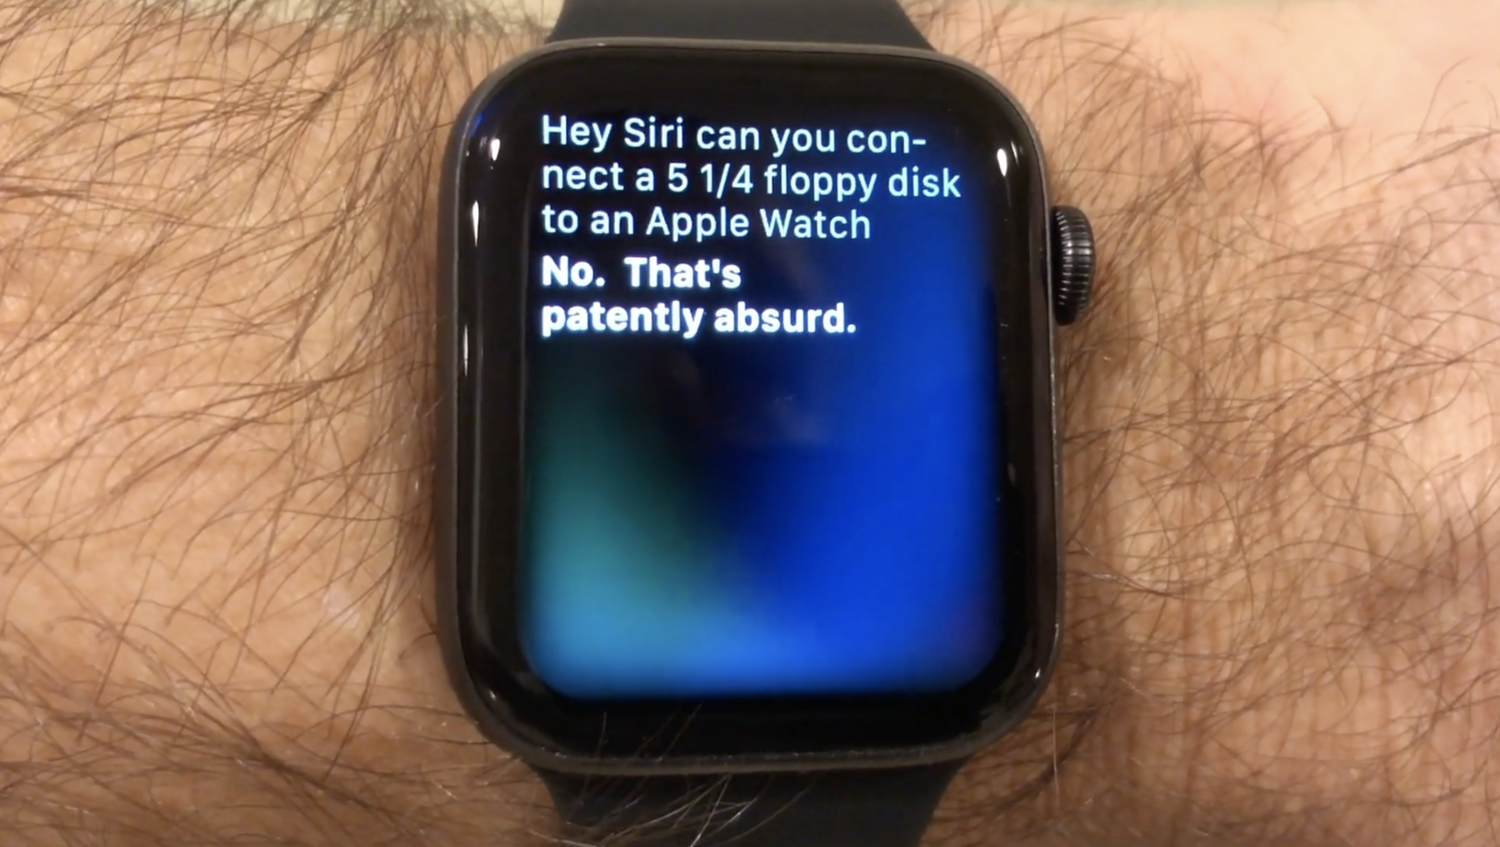 Of course you can use a 5.25-inch floppy disk with your Apple Watch!